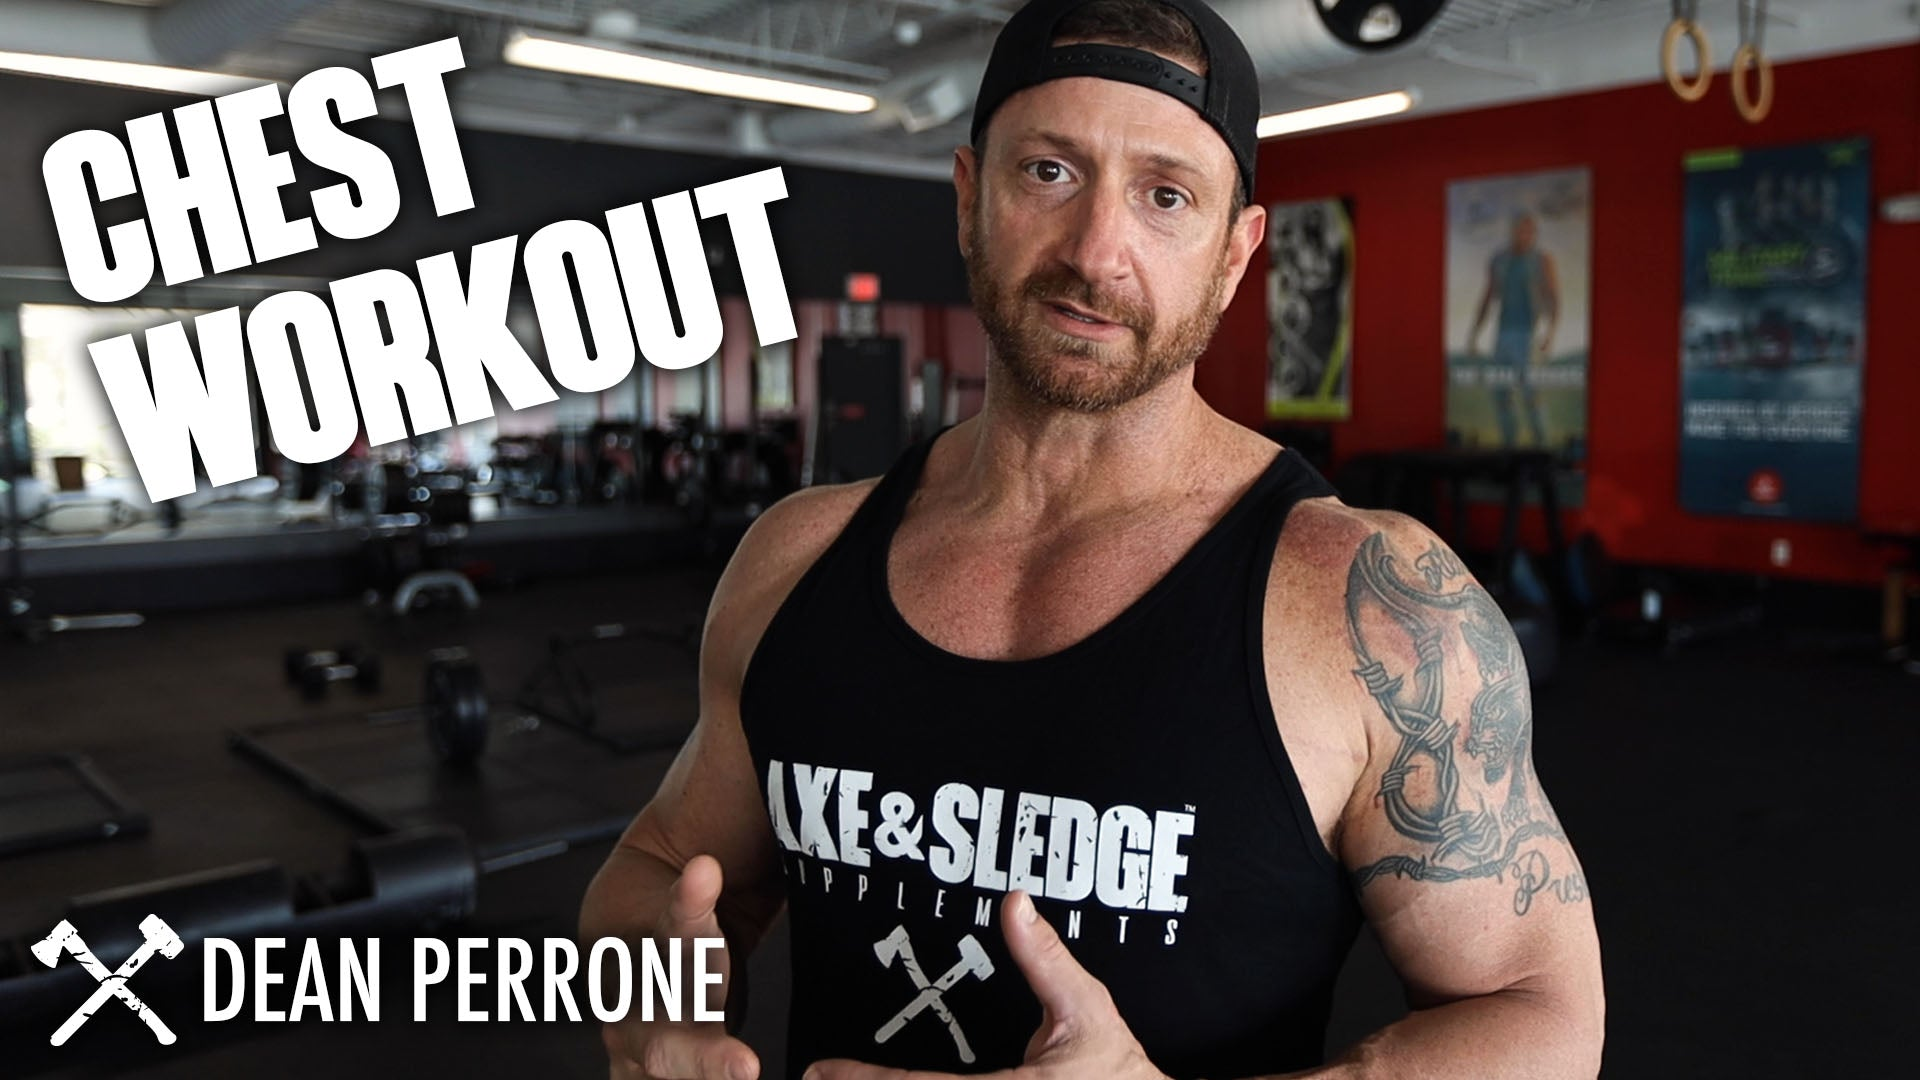 Basic Chest Workout w/ Dean Perrone!